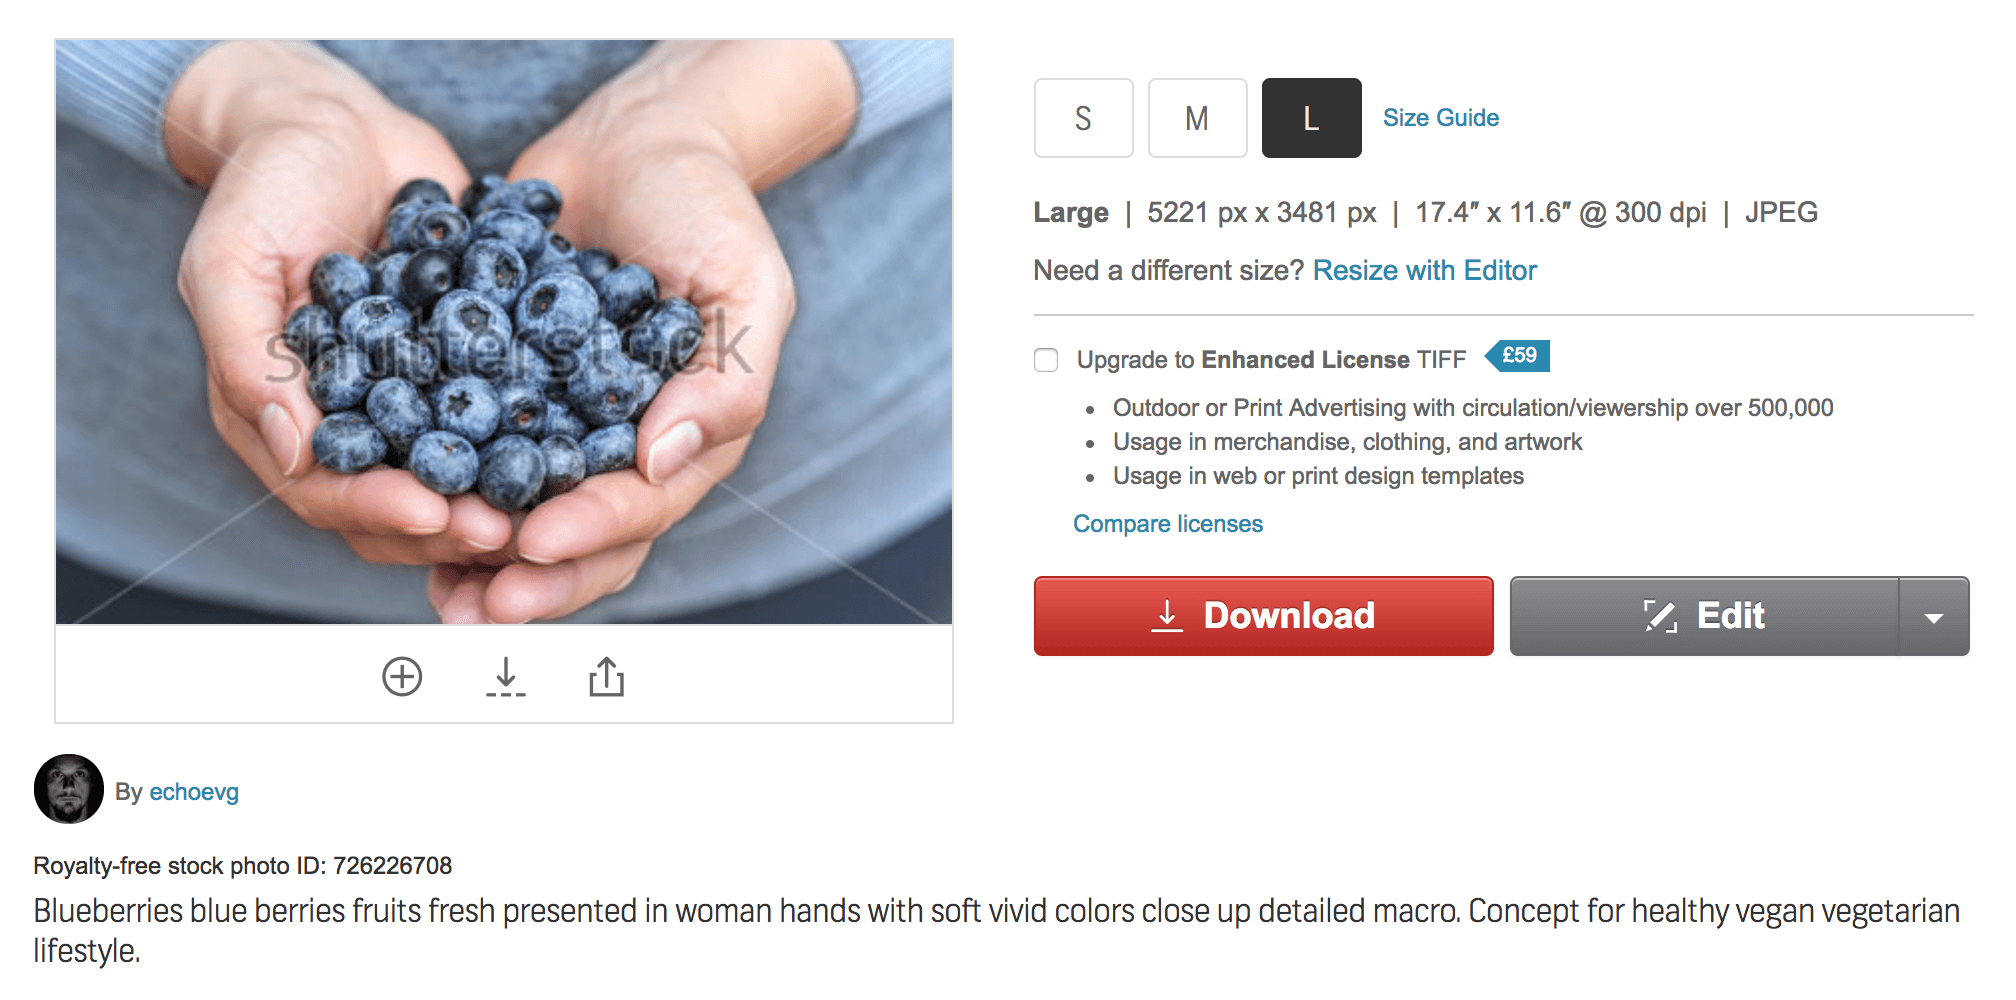 A stock photo of two hands holding blueberries, covered in a Shutterstock watermark.